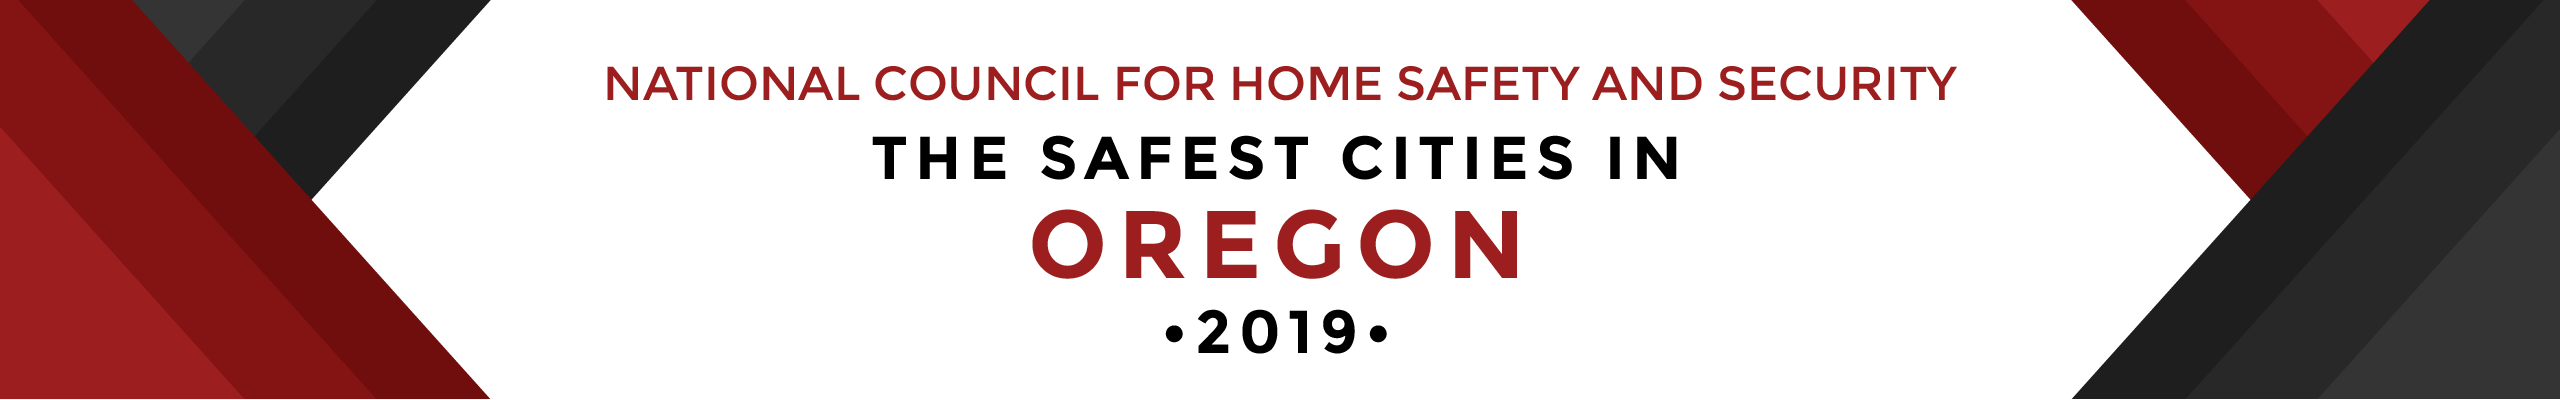 Safest Cities Oregon - header